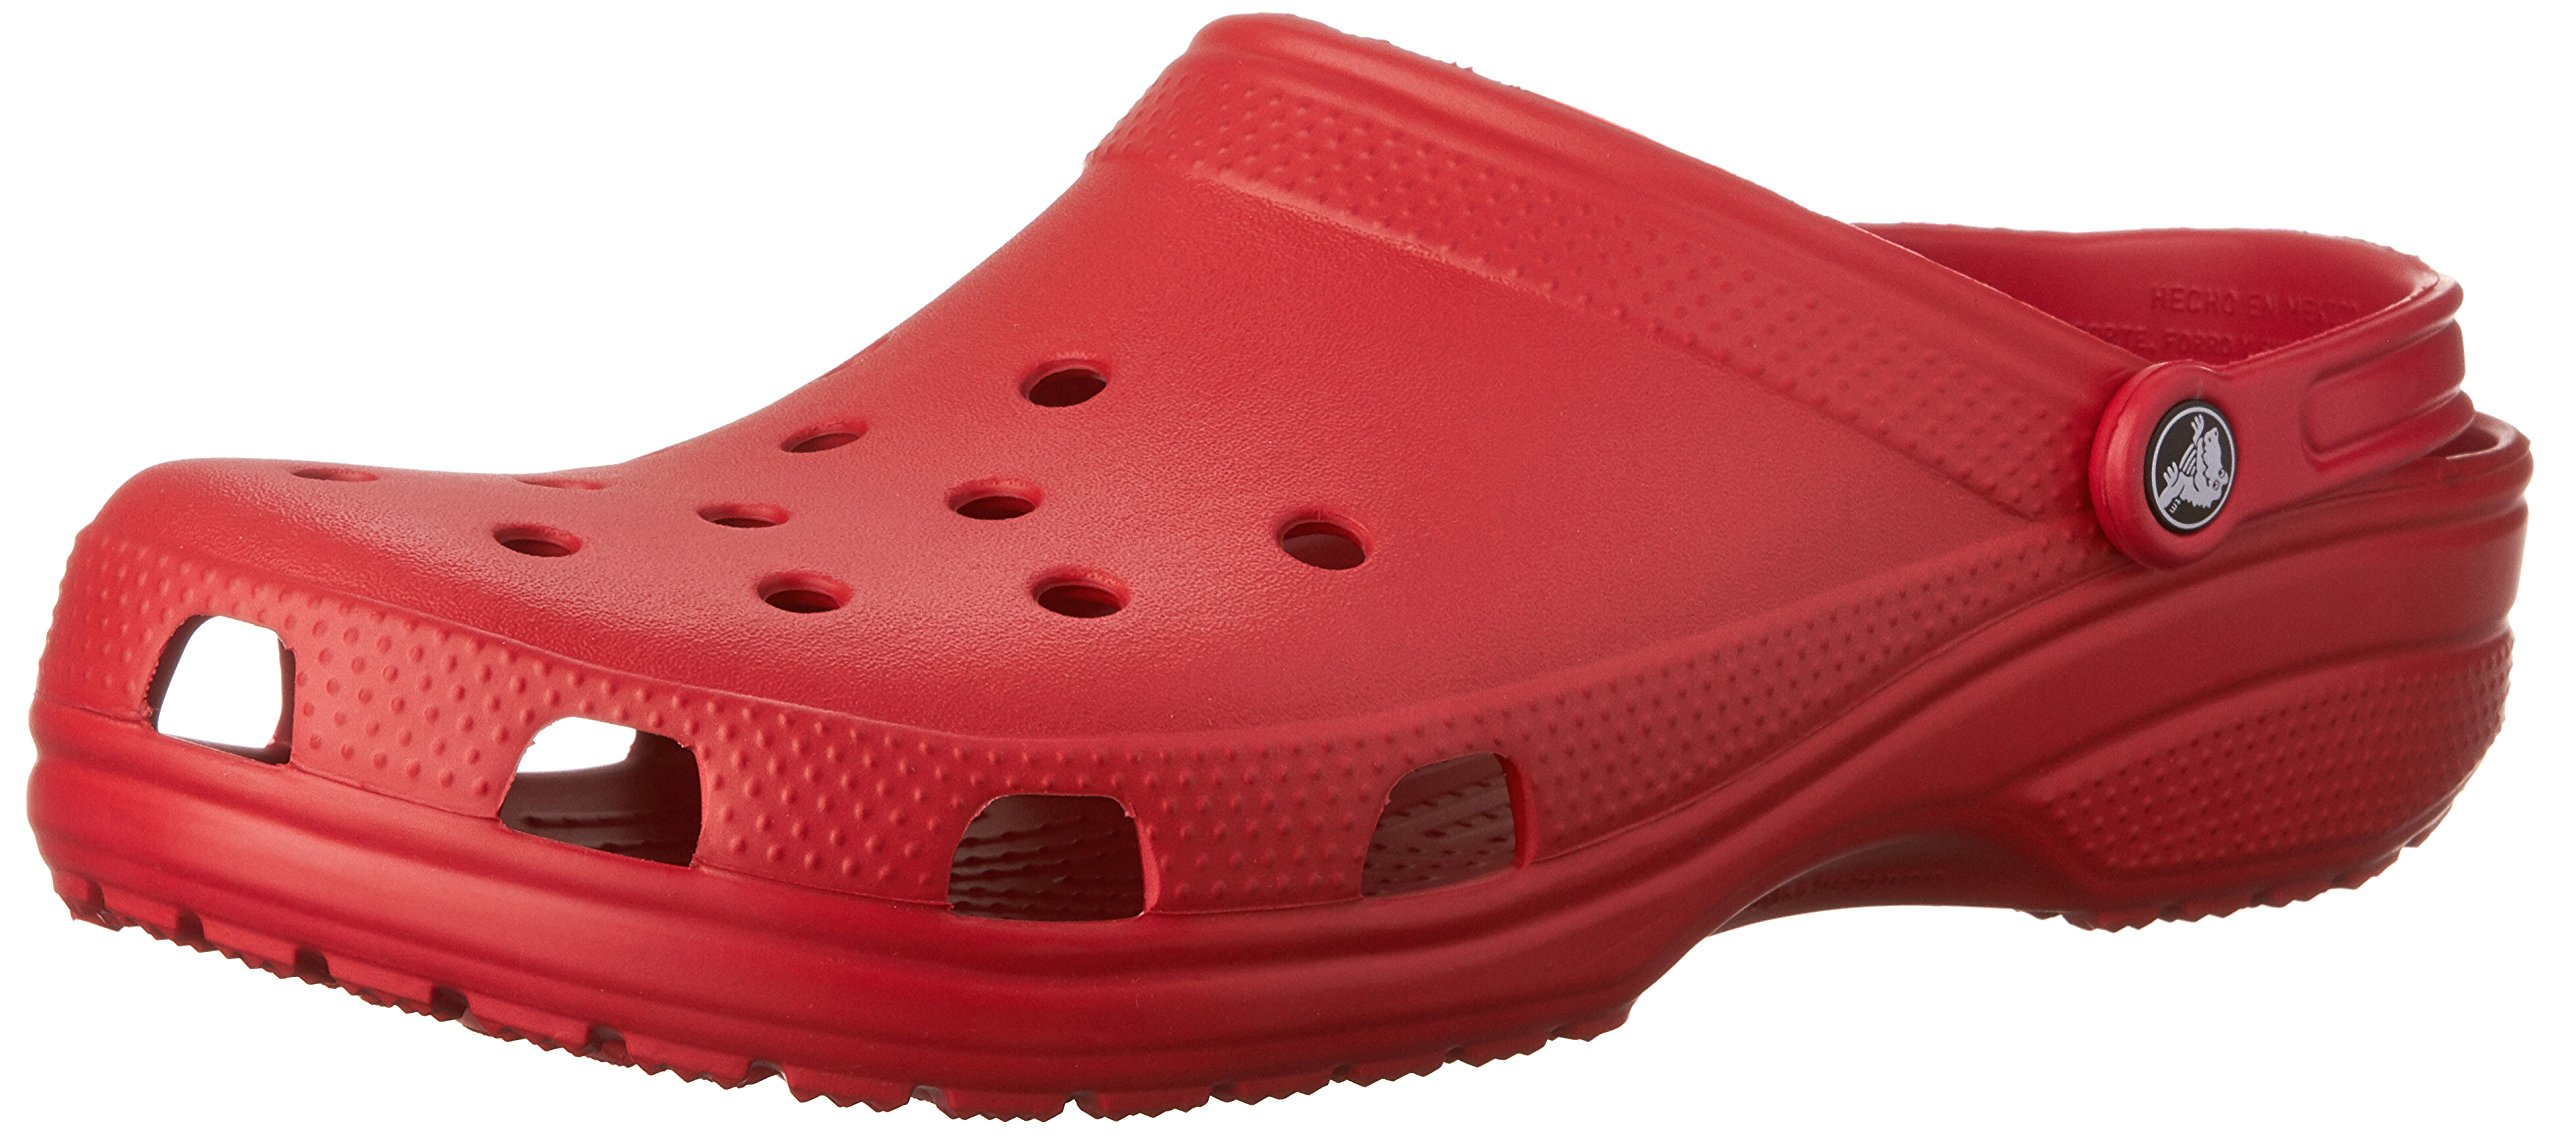 Crocs Classic Clog|Comfortable Slip On Casual Water Shoe, Pepper, 8 M US Women / 6 M US Men by Crocs